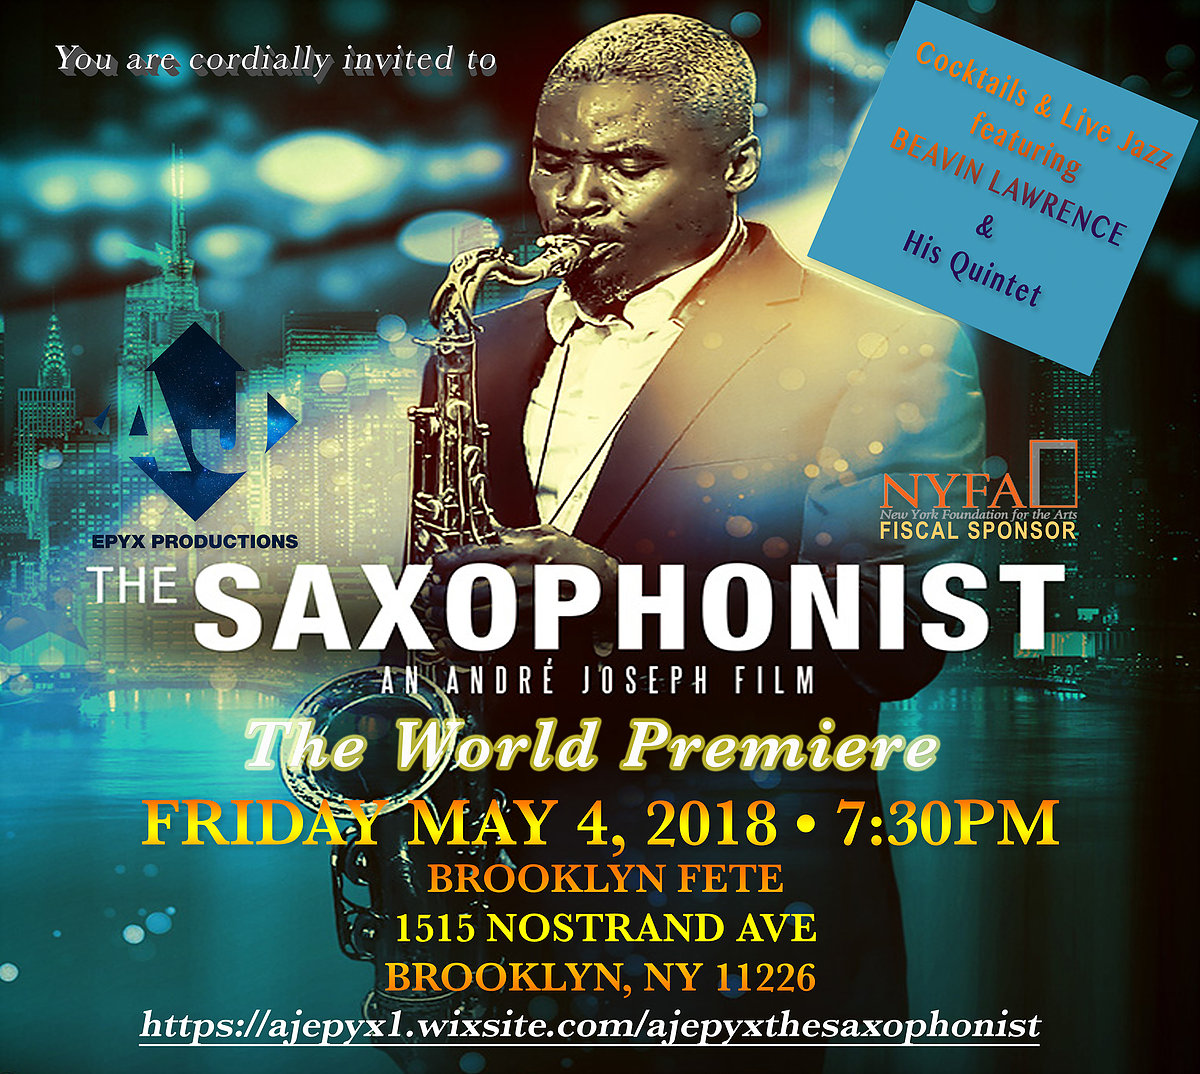 The Saxophonist - Premiere